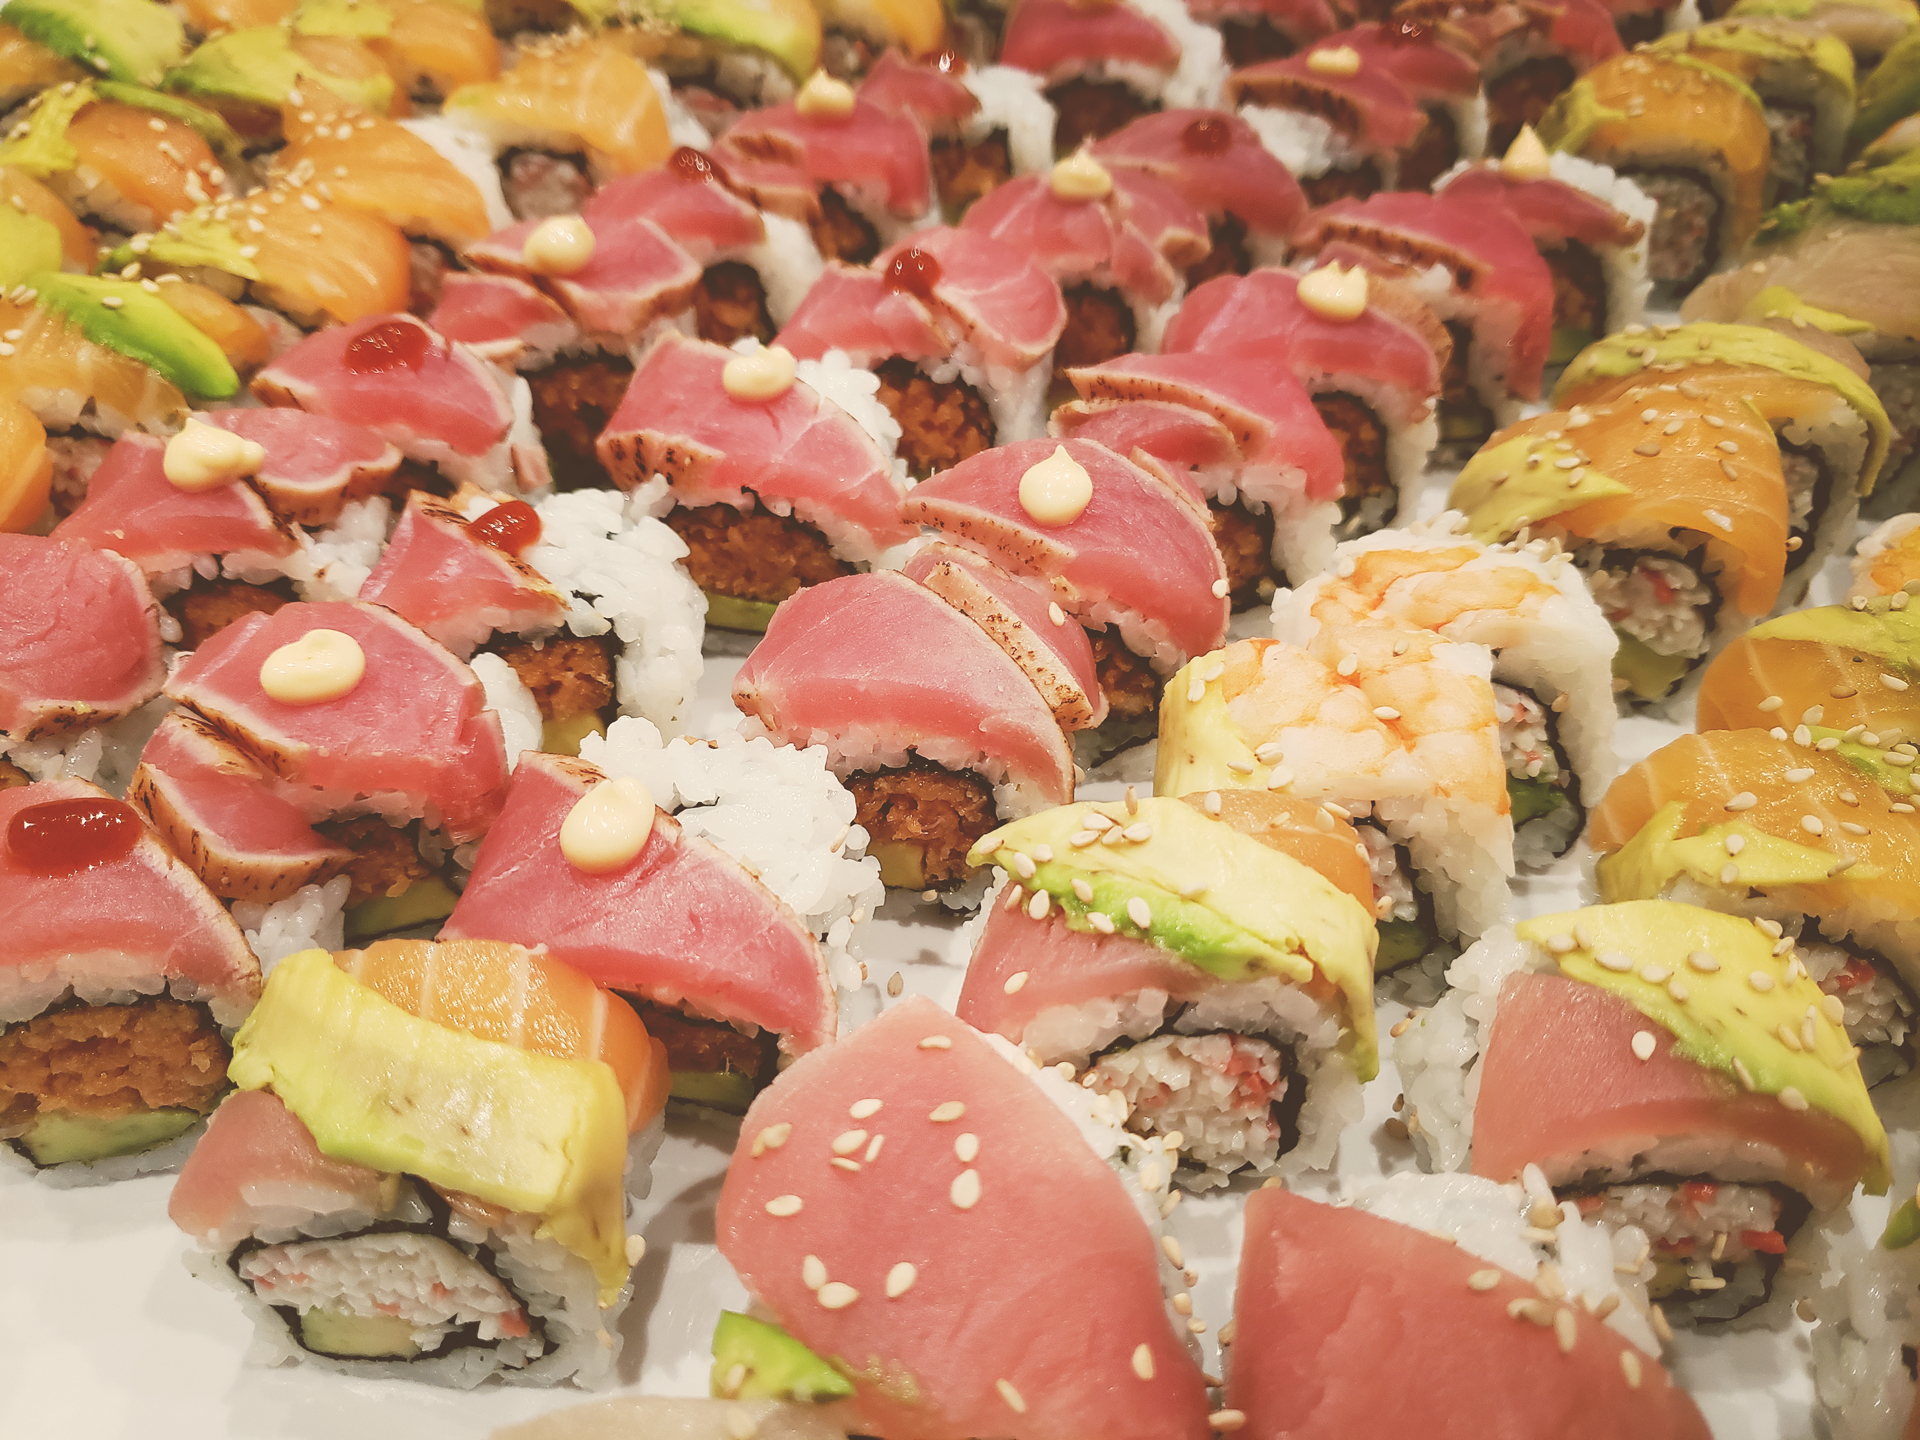 akioni-catering-sushi-sashimi-teppanyaki-luau-authentic-japanese-cuisine-hawaiian-los-angeles.jpg